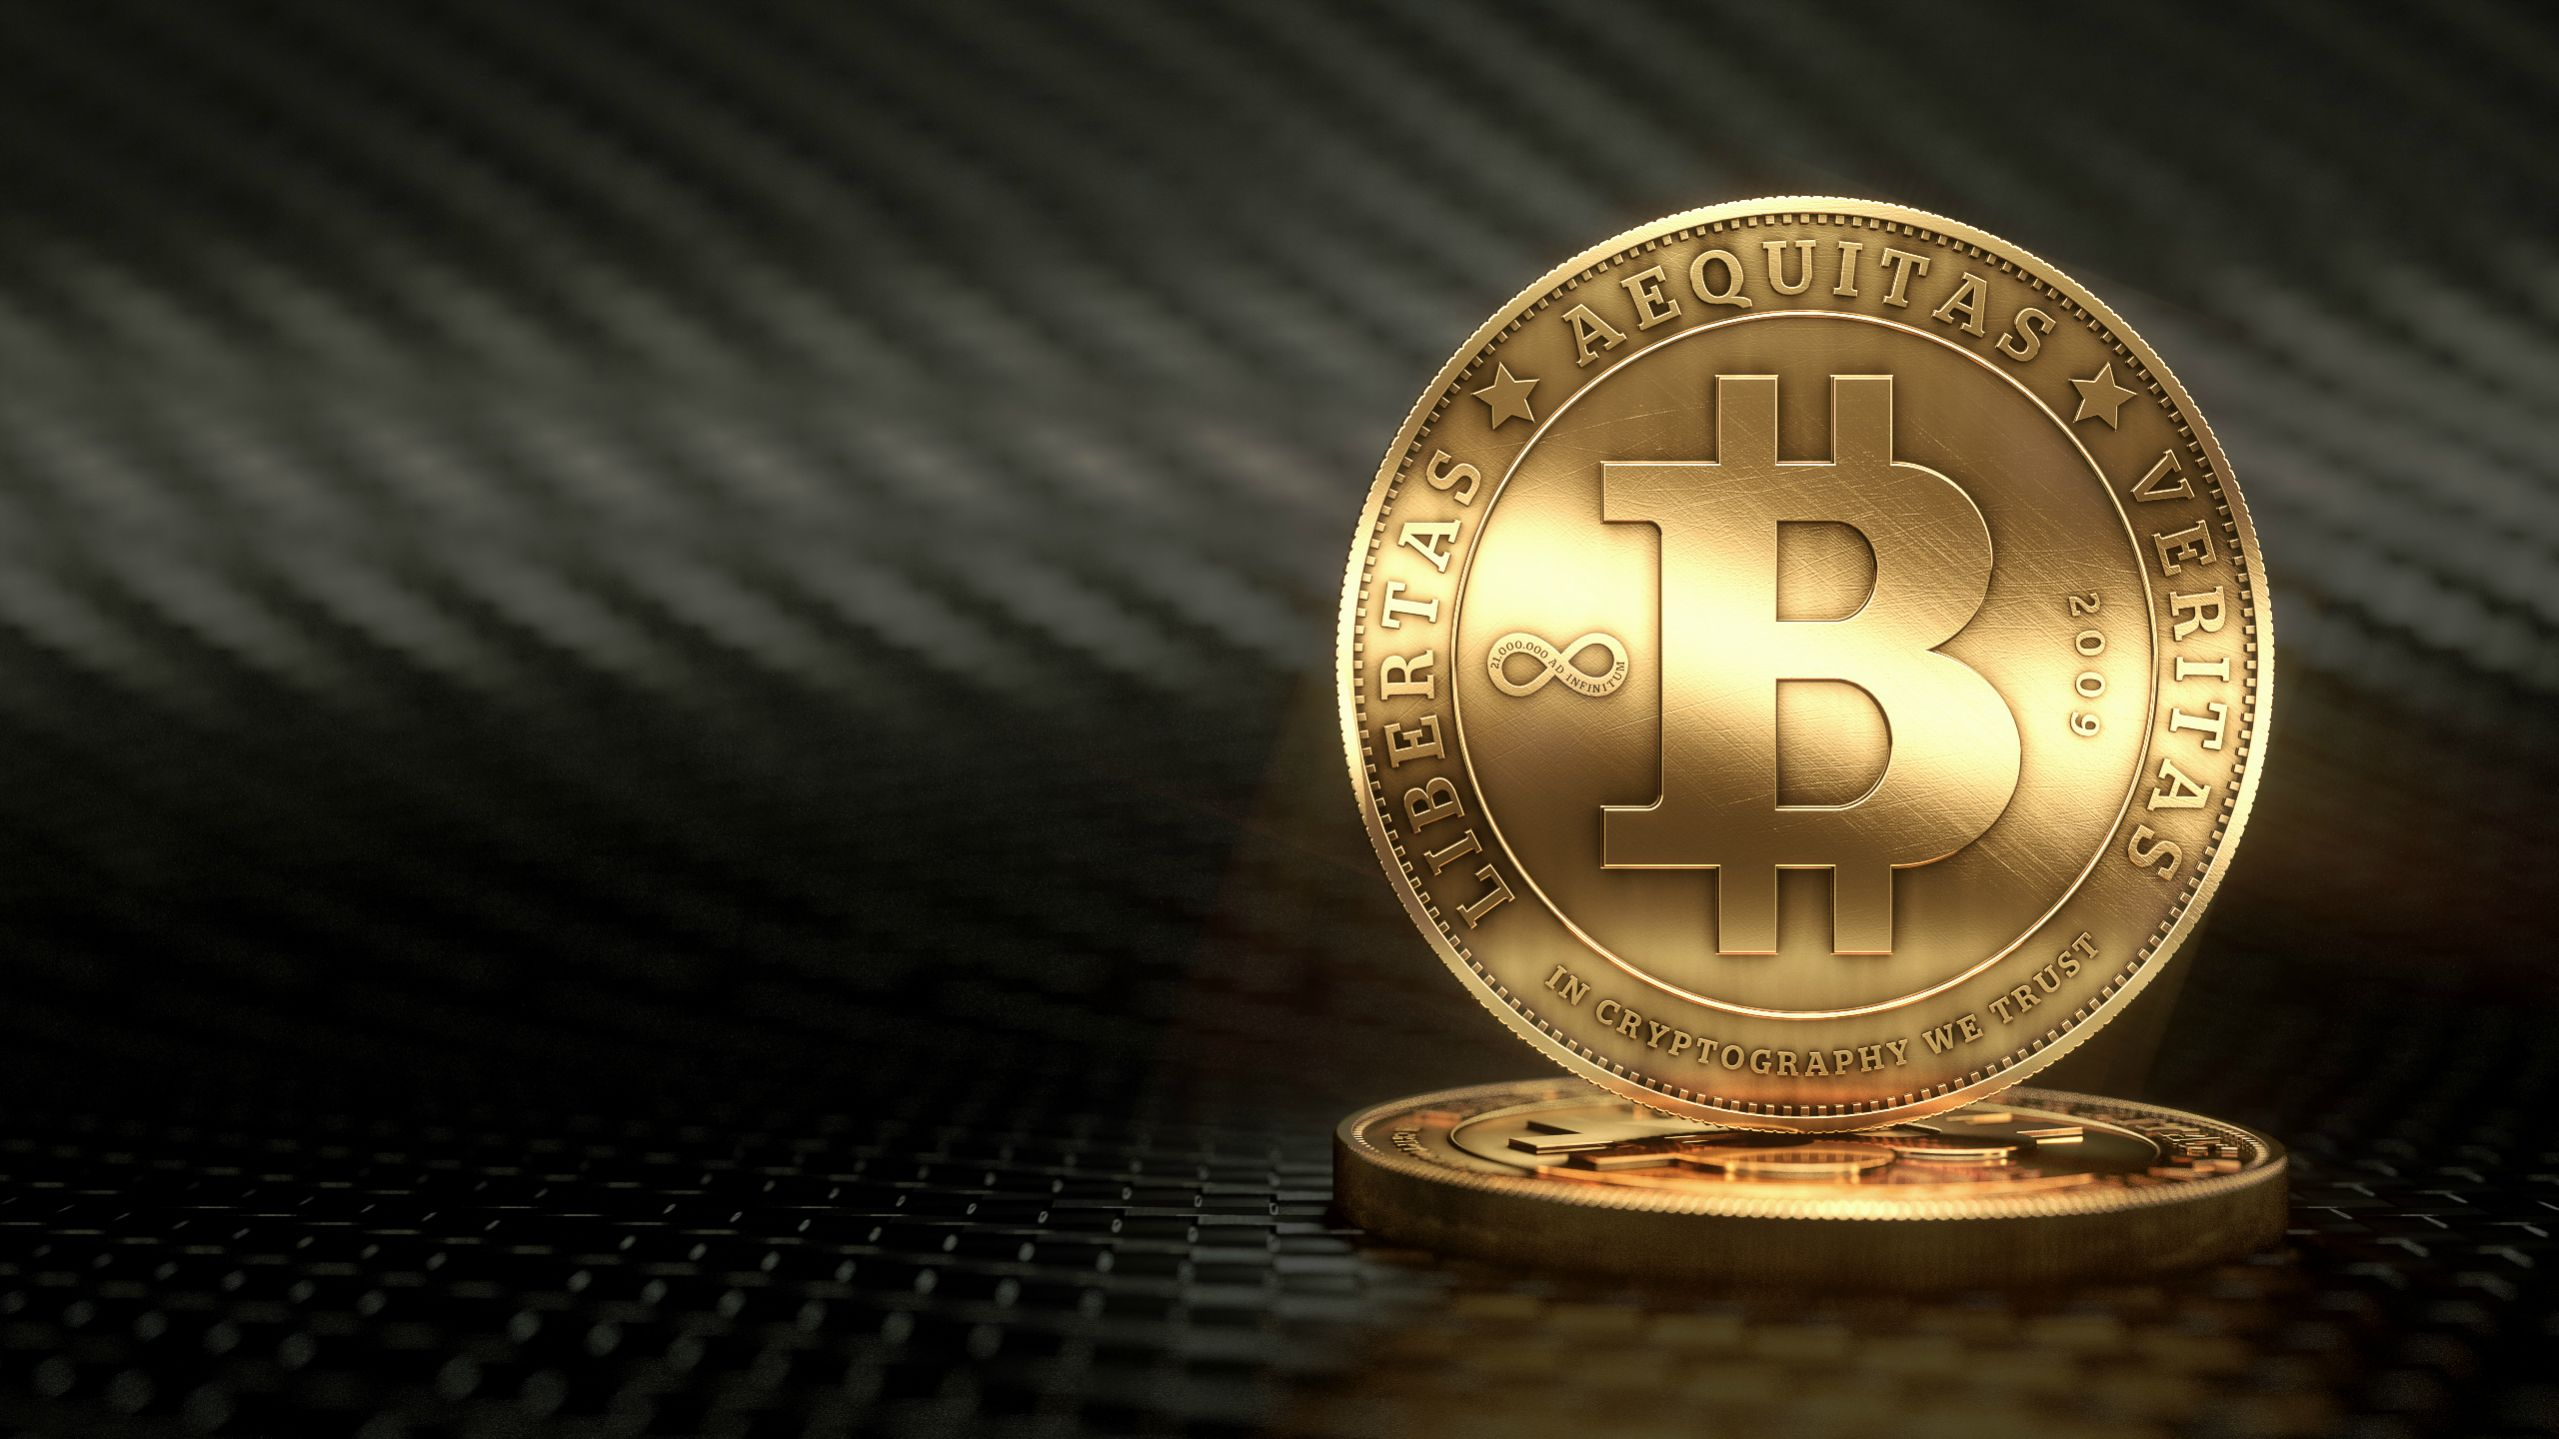 Purchase bitcoins australia place bet on mcgregor mayweather fight